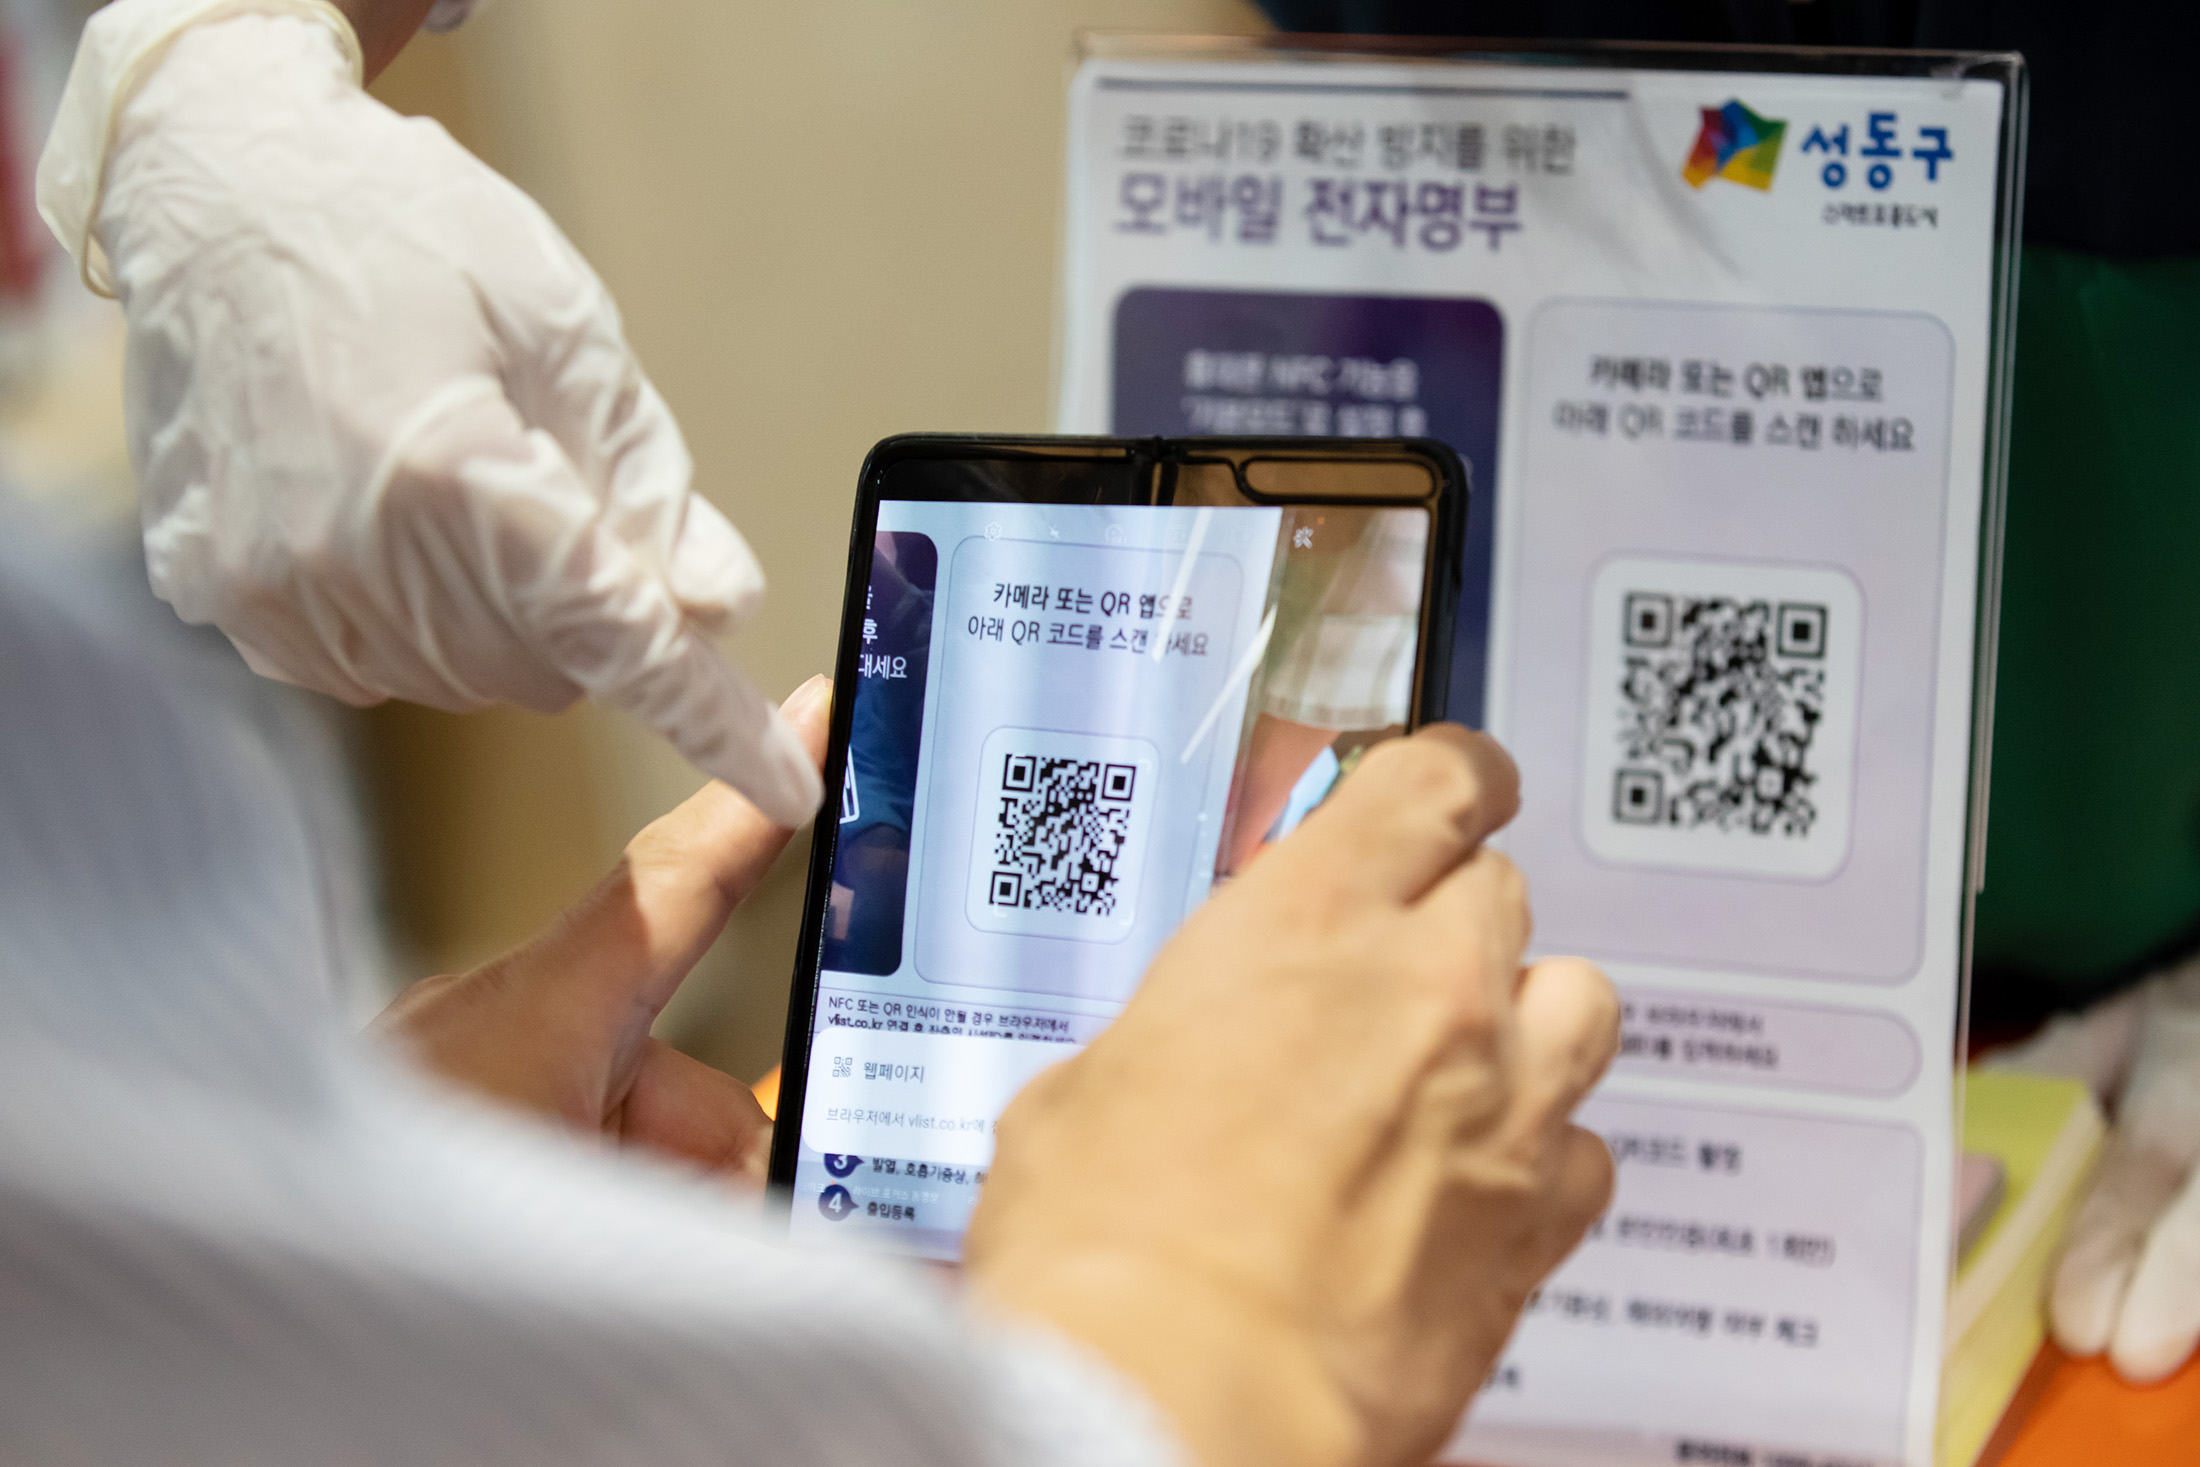 A visitor scans a QR code to log his entry at the Seongdong district government office building in Seoul, on Friday, September 4.